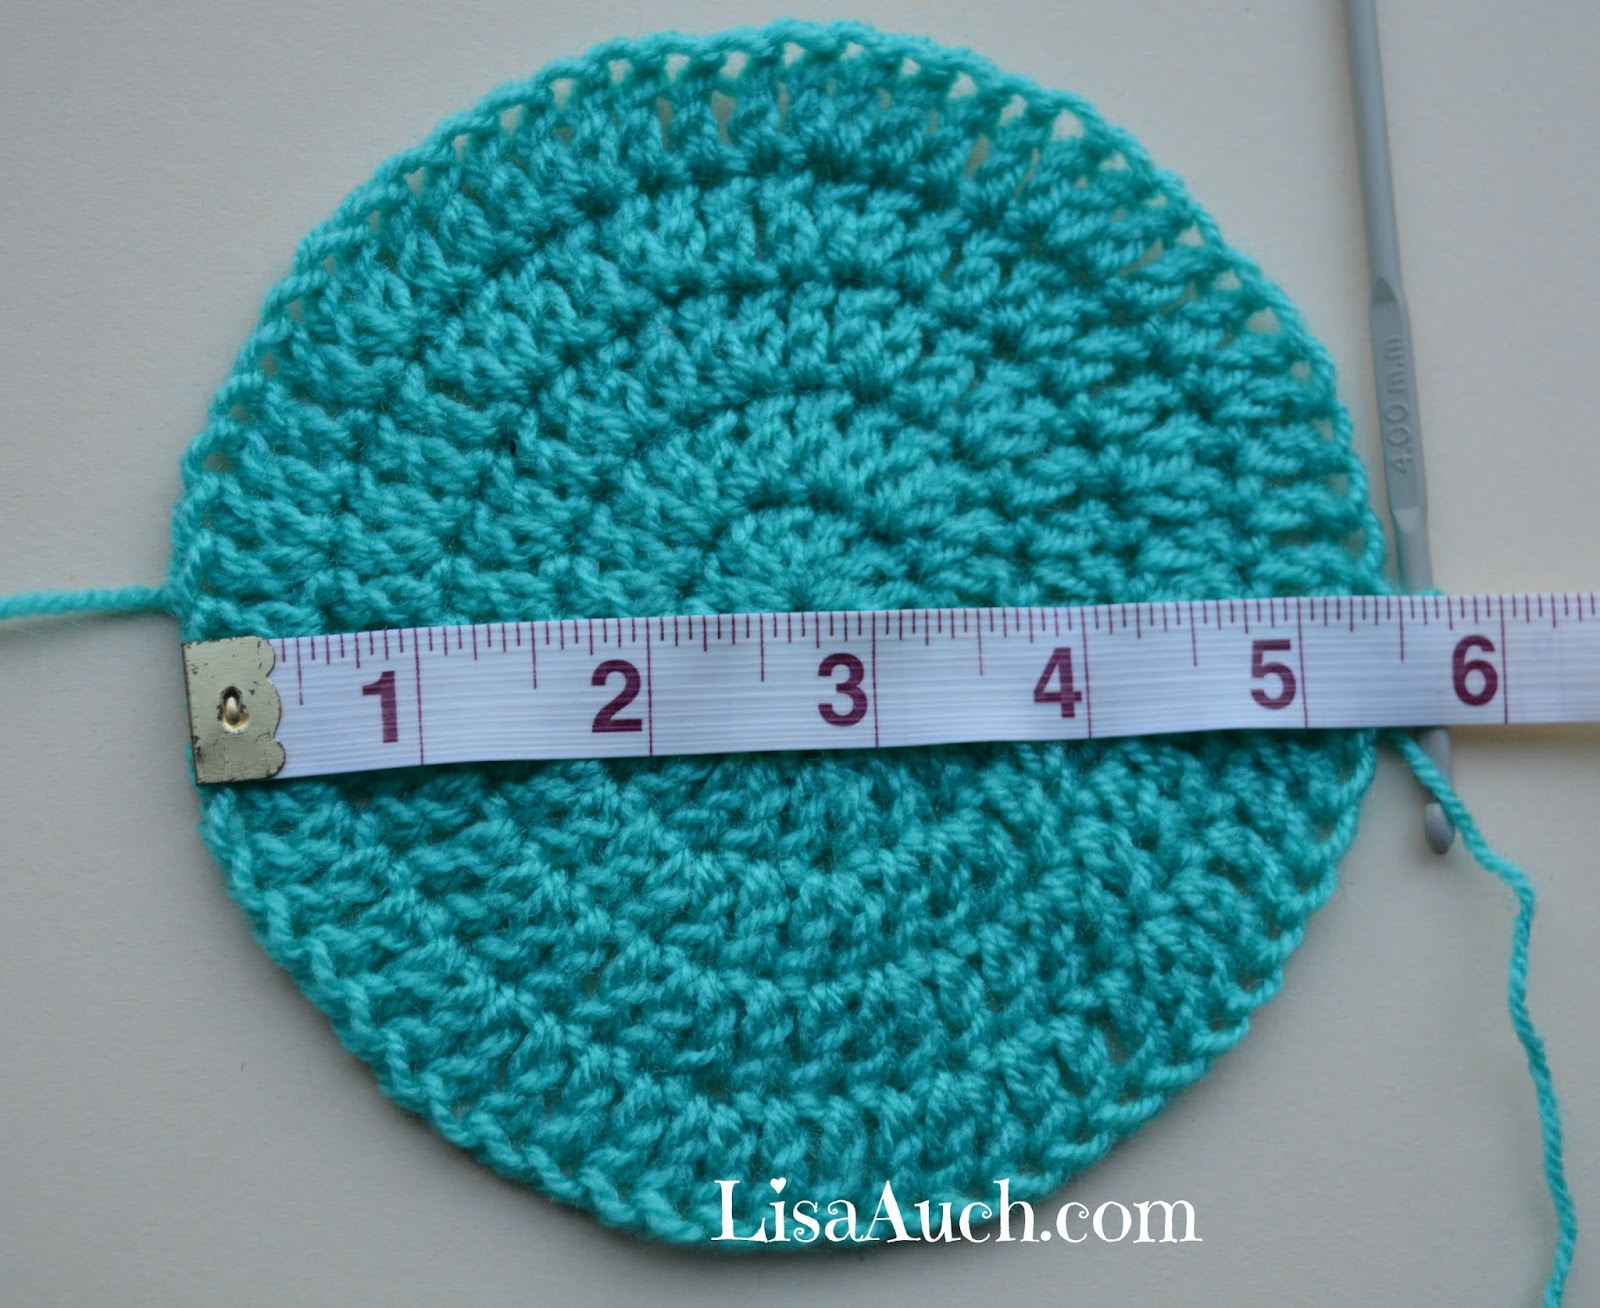 Gallery For > How To Crochet A Baby Hat